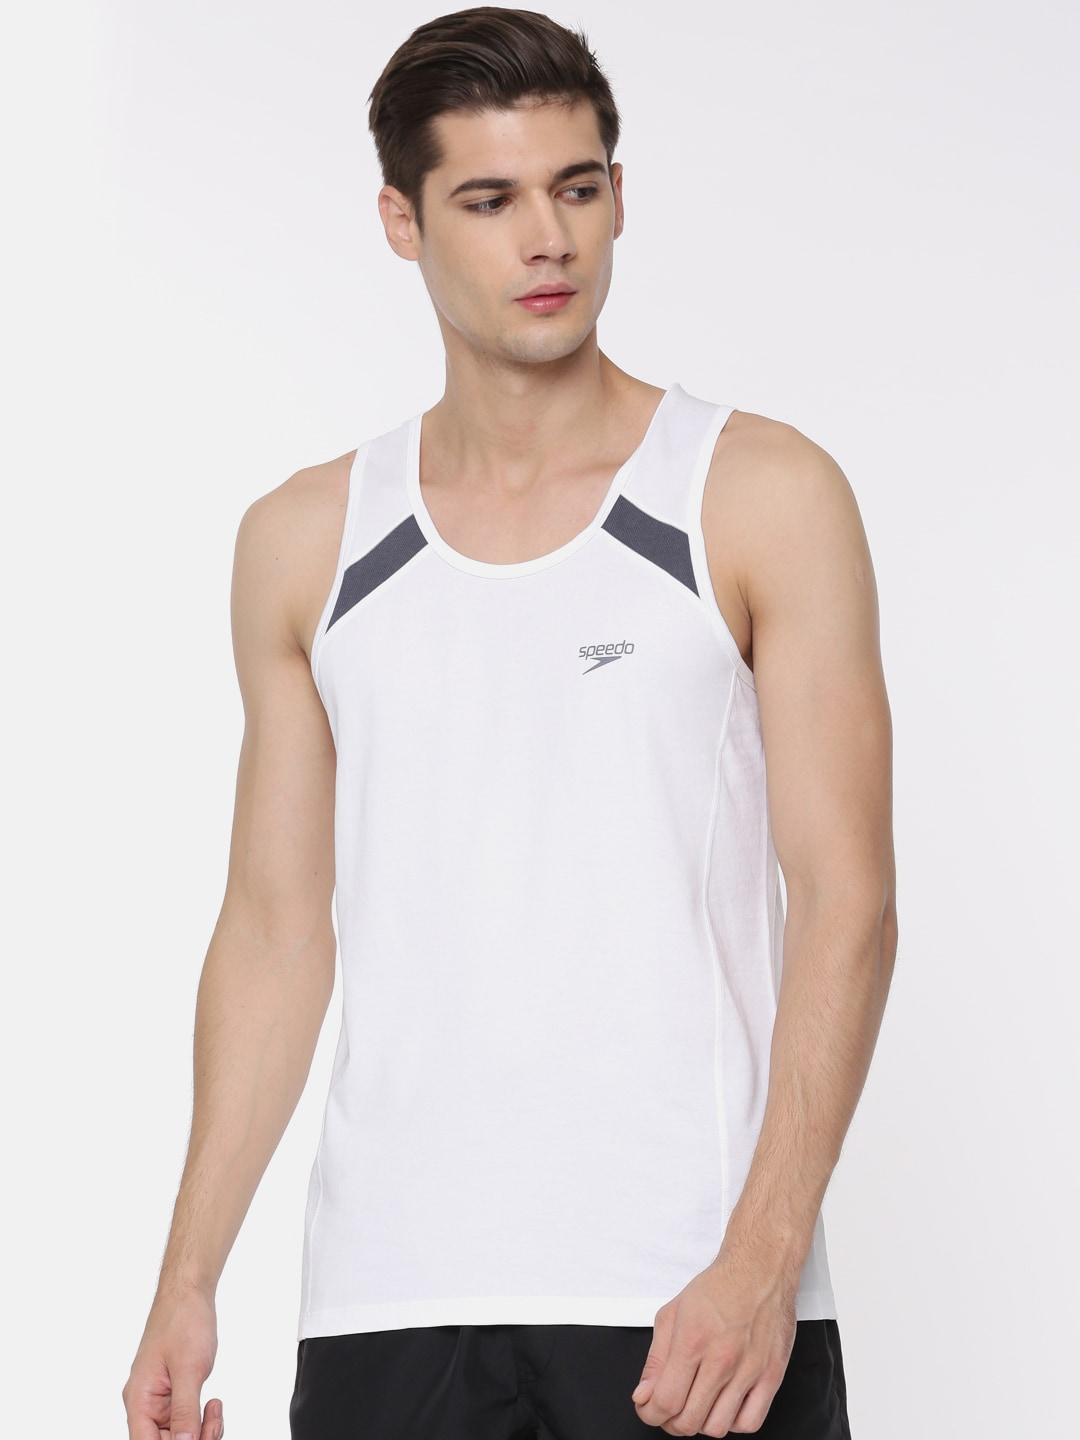 450191c30e253 Buy ADIDAS Men Black Sleeveless T Shirt - Tshirts for Men 306505 ...